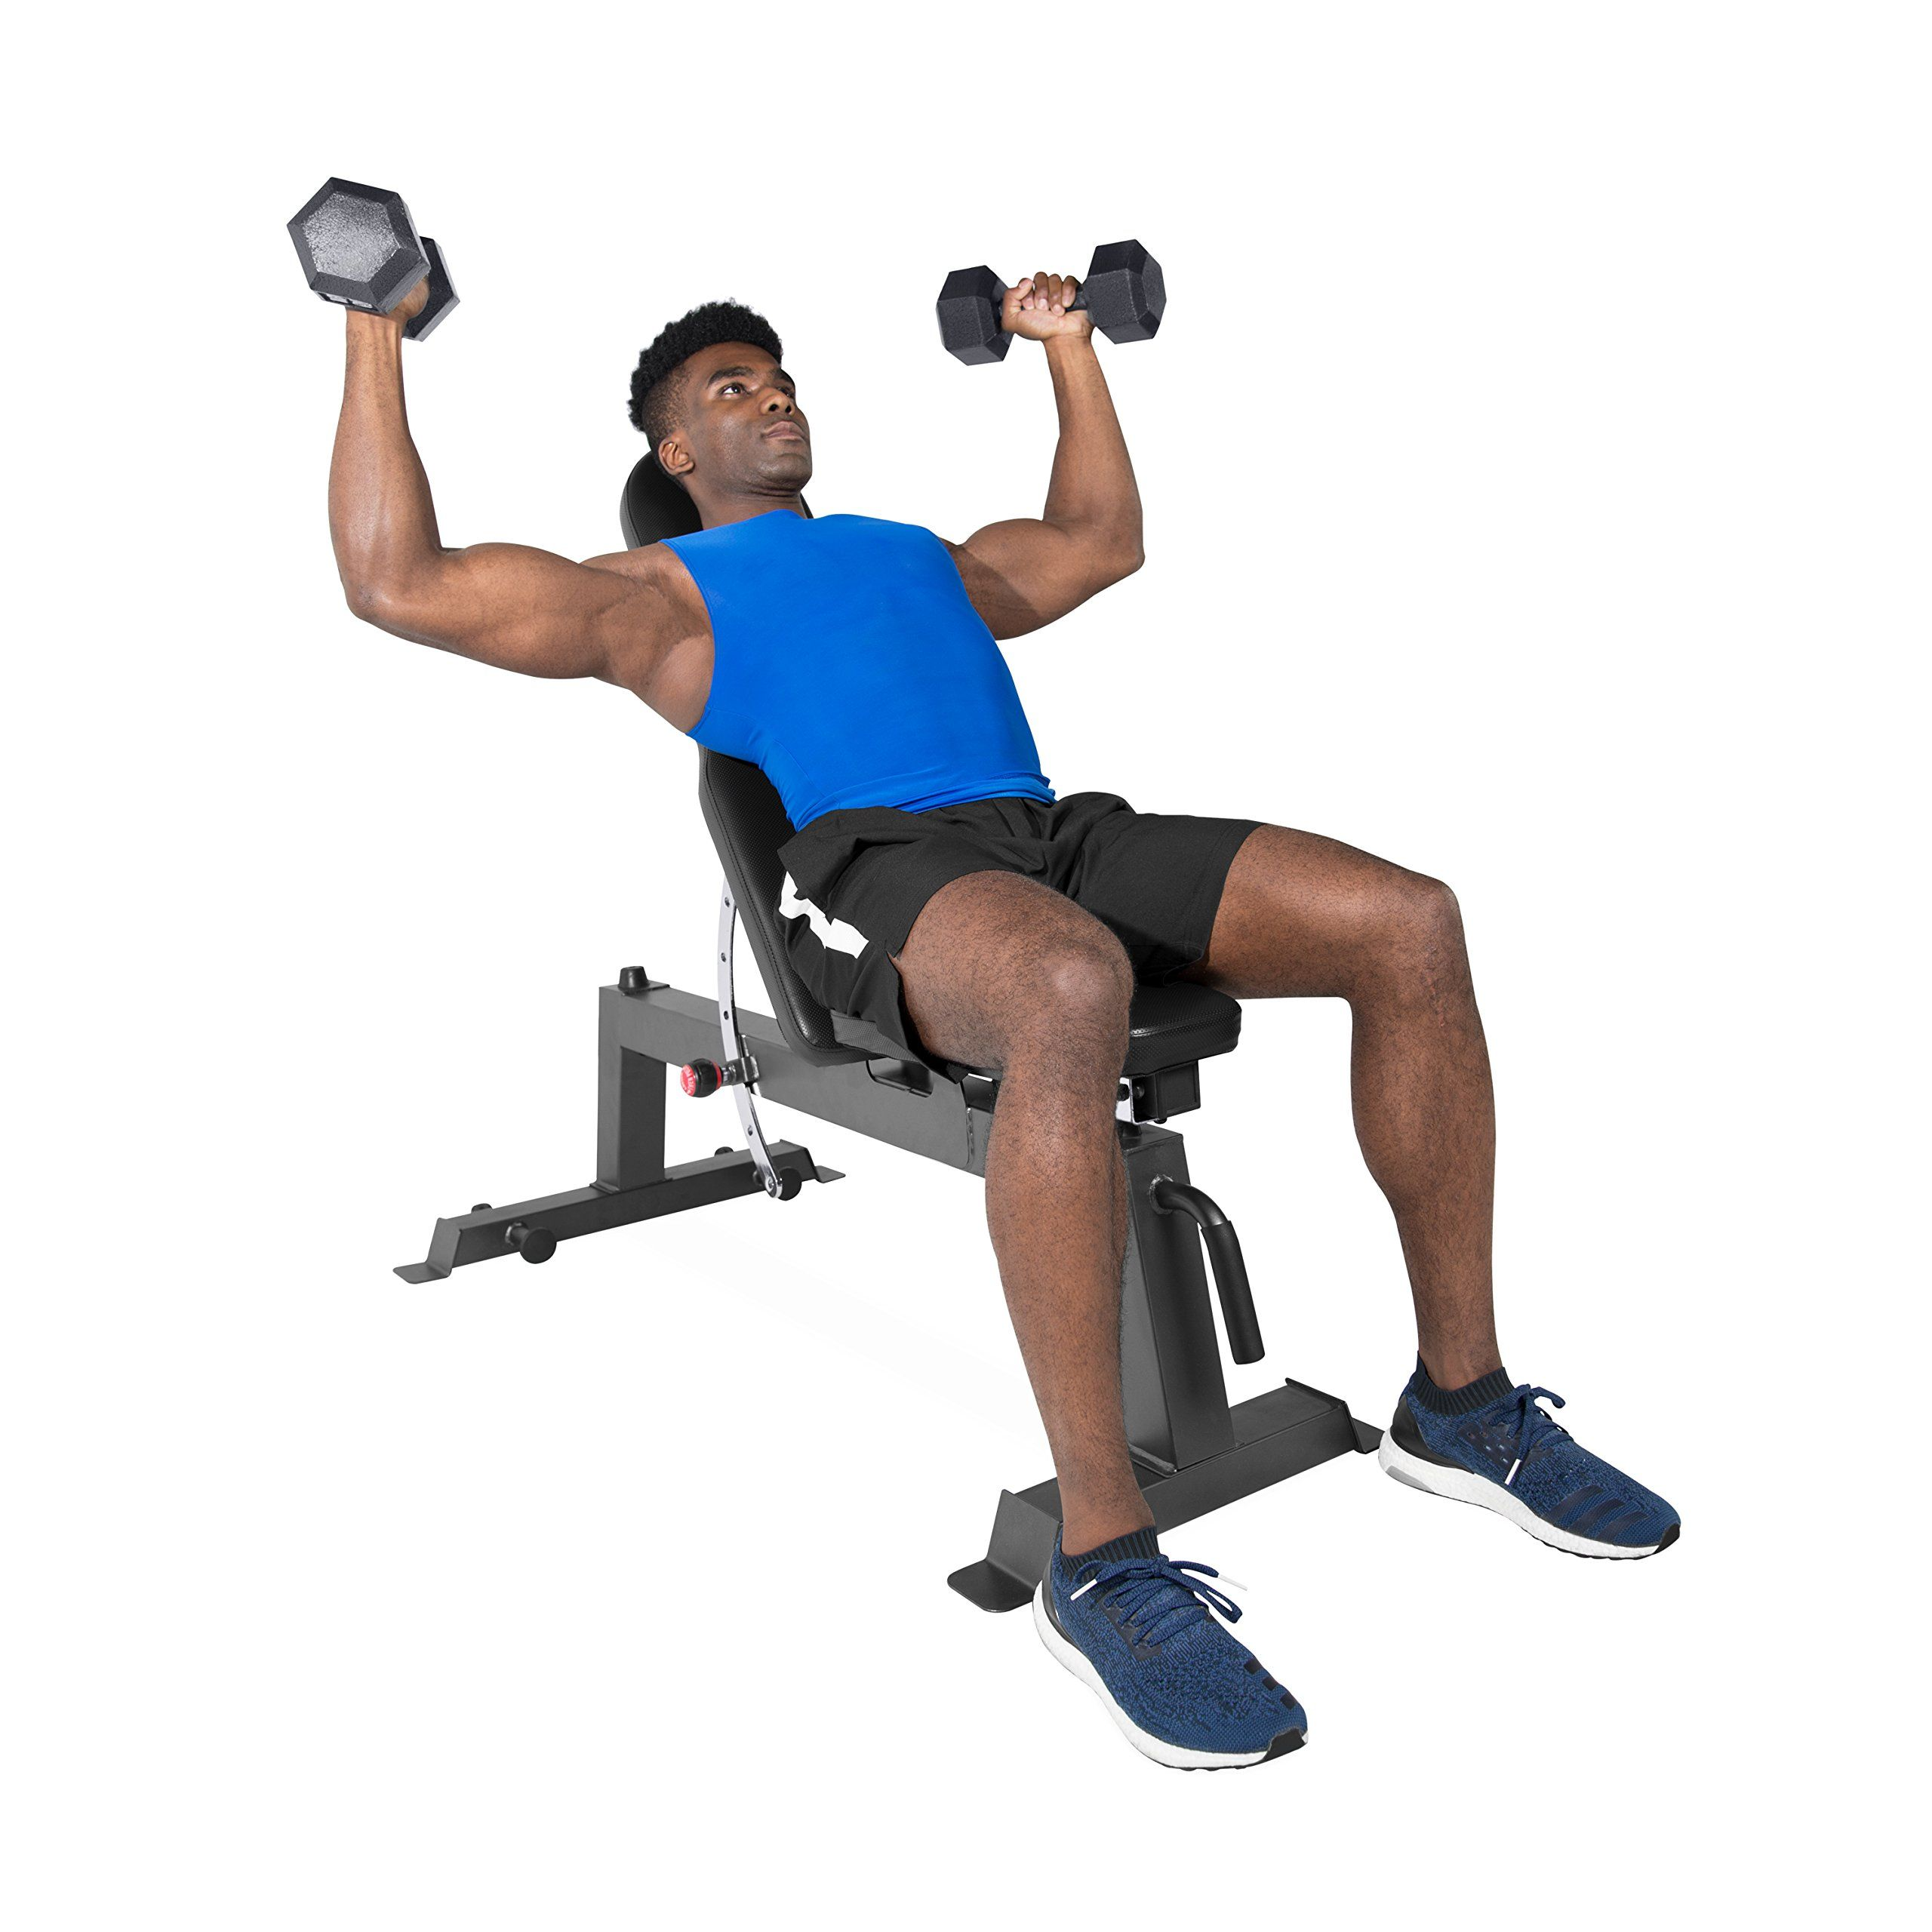 Cap barbell black deluxe utility bench you could find